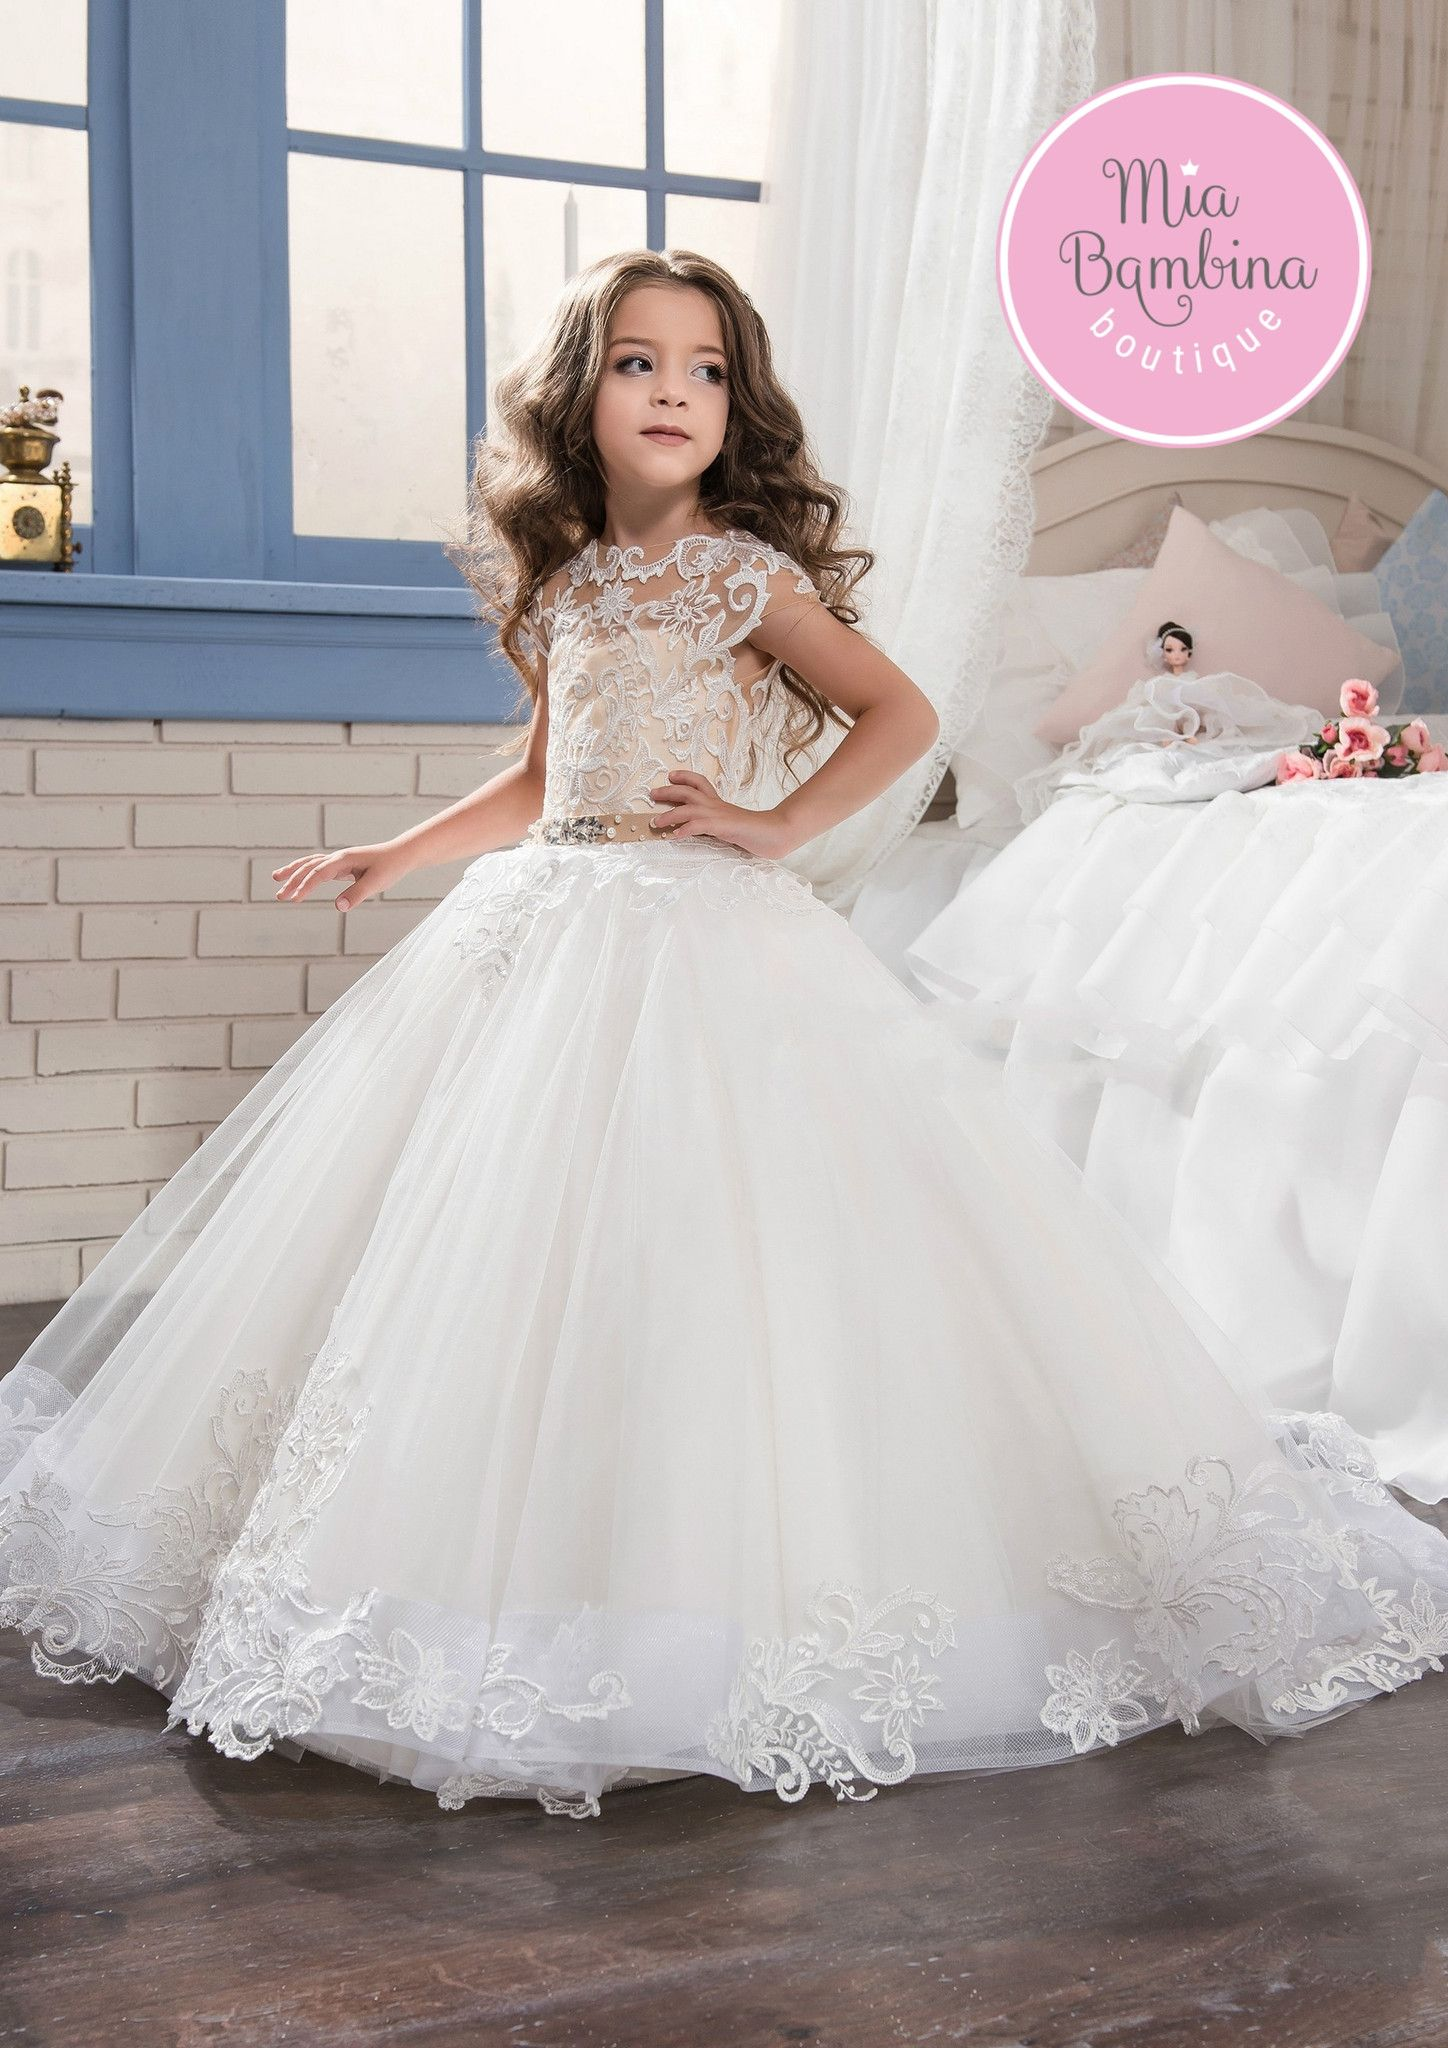 Flower Girl Dresses Wedding Party Dress Tea Length Flower Girl Dresses White Appliques O Neck Long Sleeves Lace Kids Flower Girl Dresses Abendkleider Kinder Reliable Performance